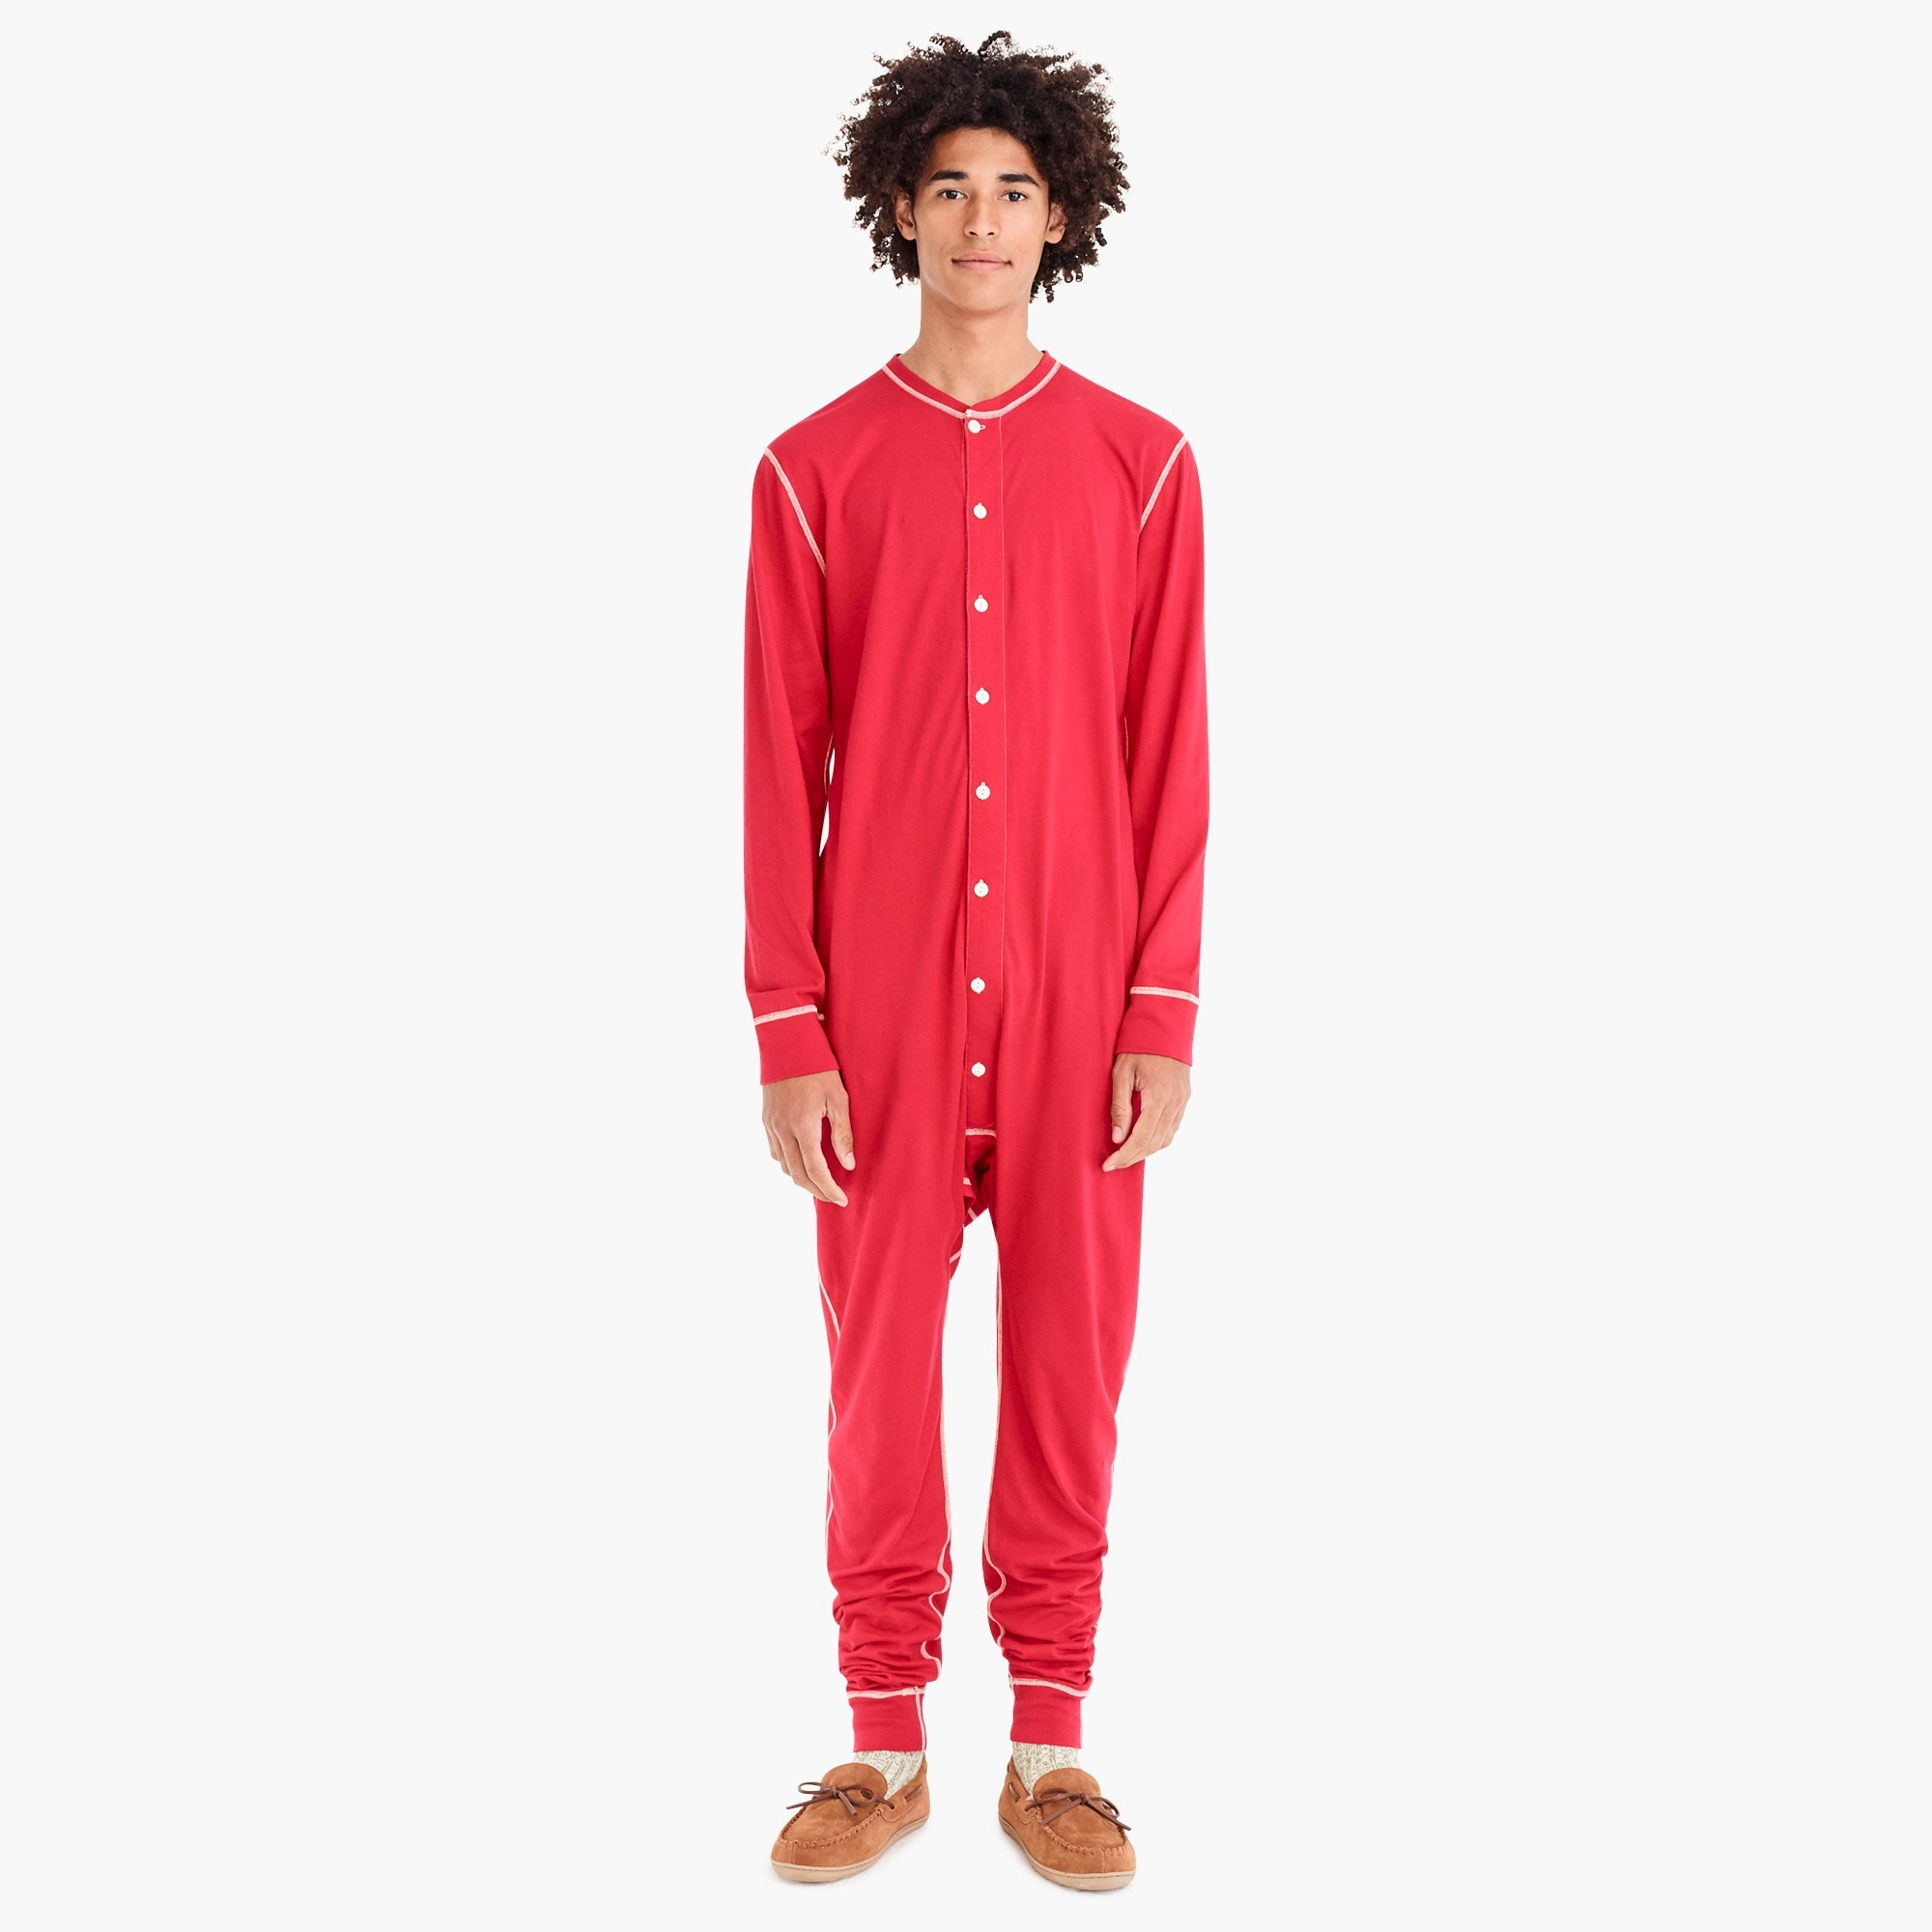 union suit in red : men pajama sets